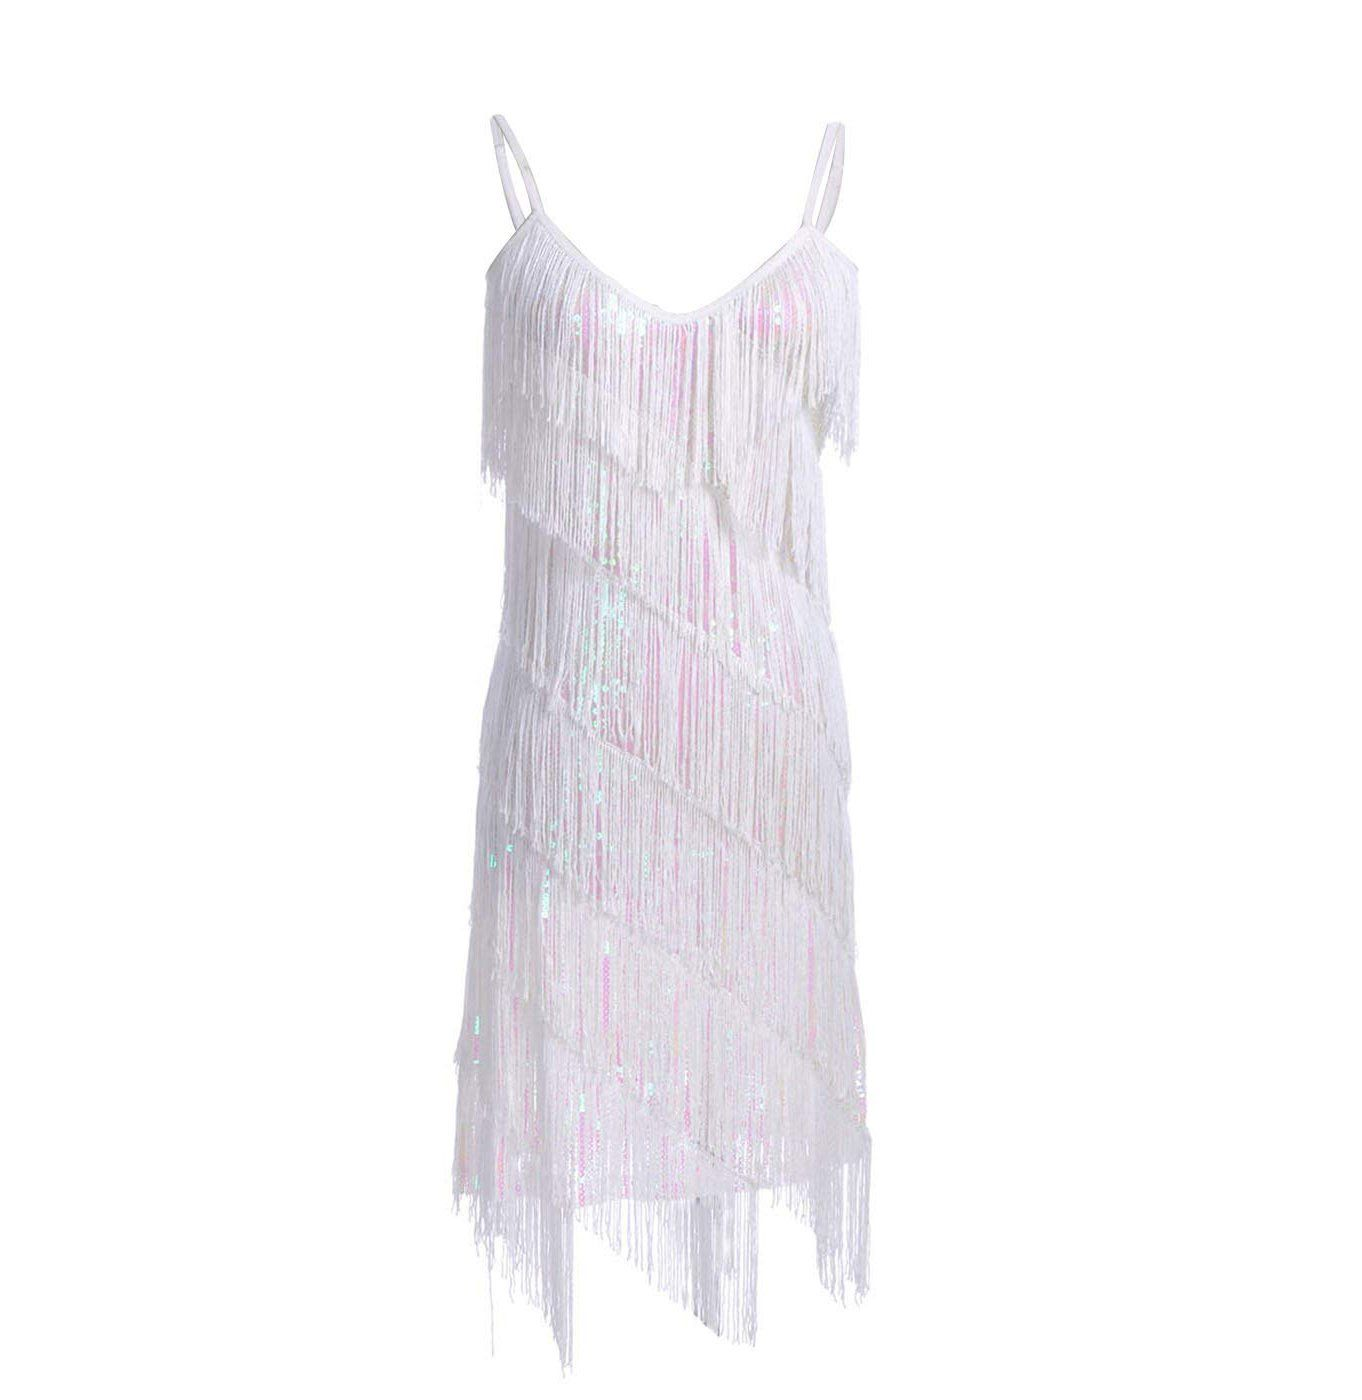 Fringe Sequin Strap Backless 1920s Flapper Mini Dress White